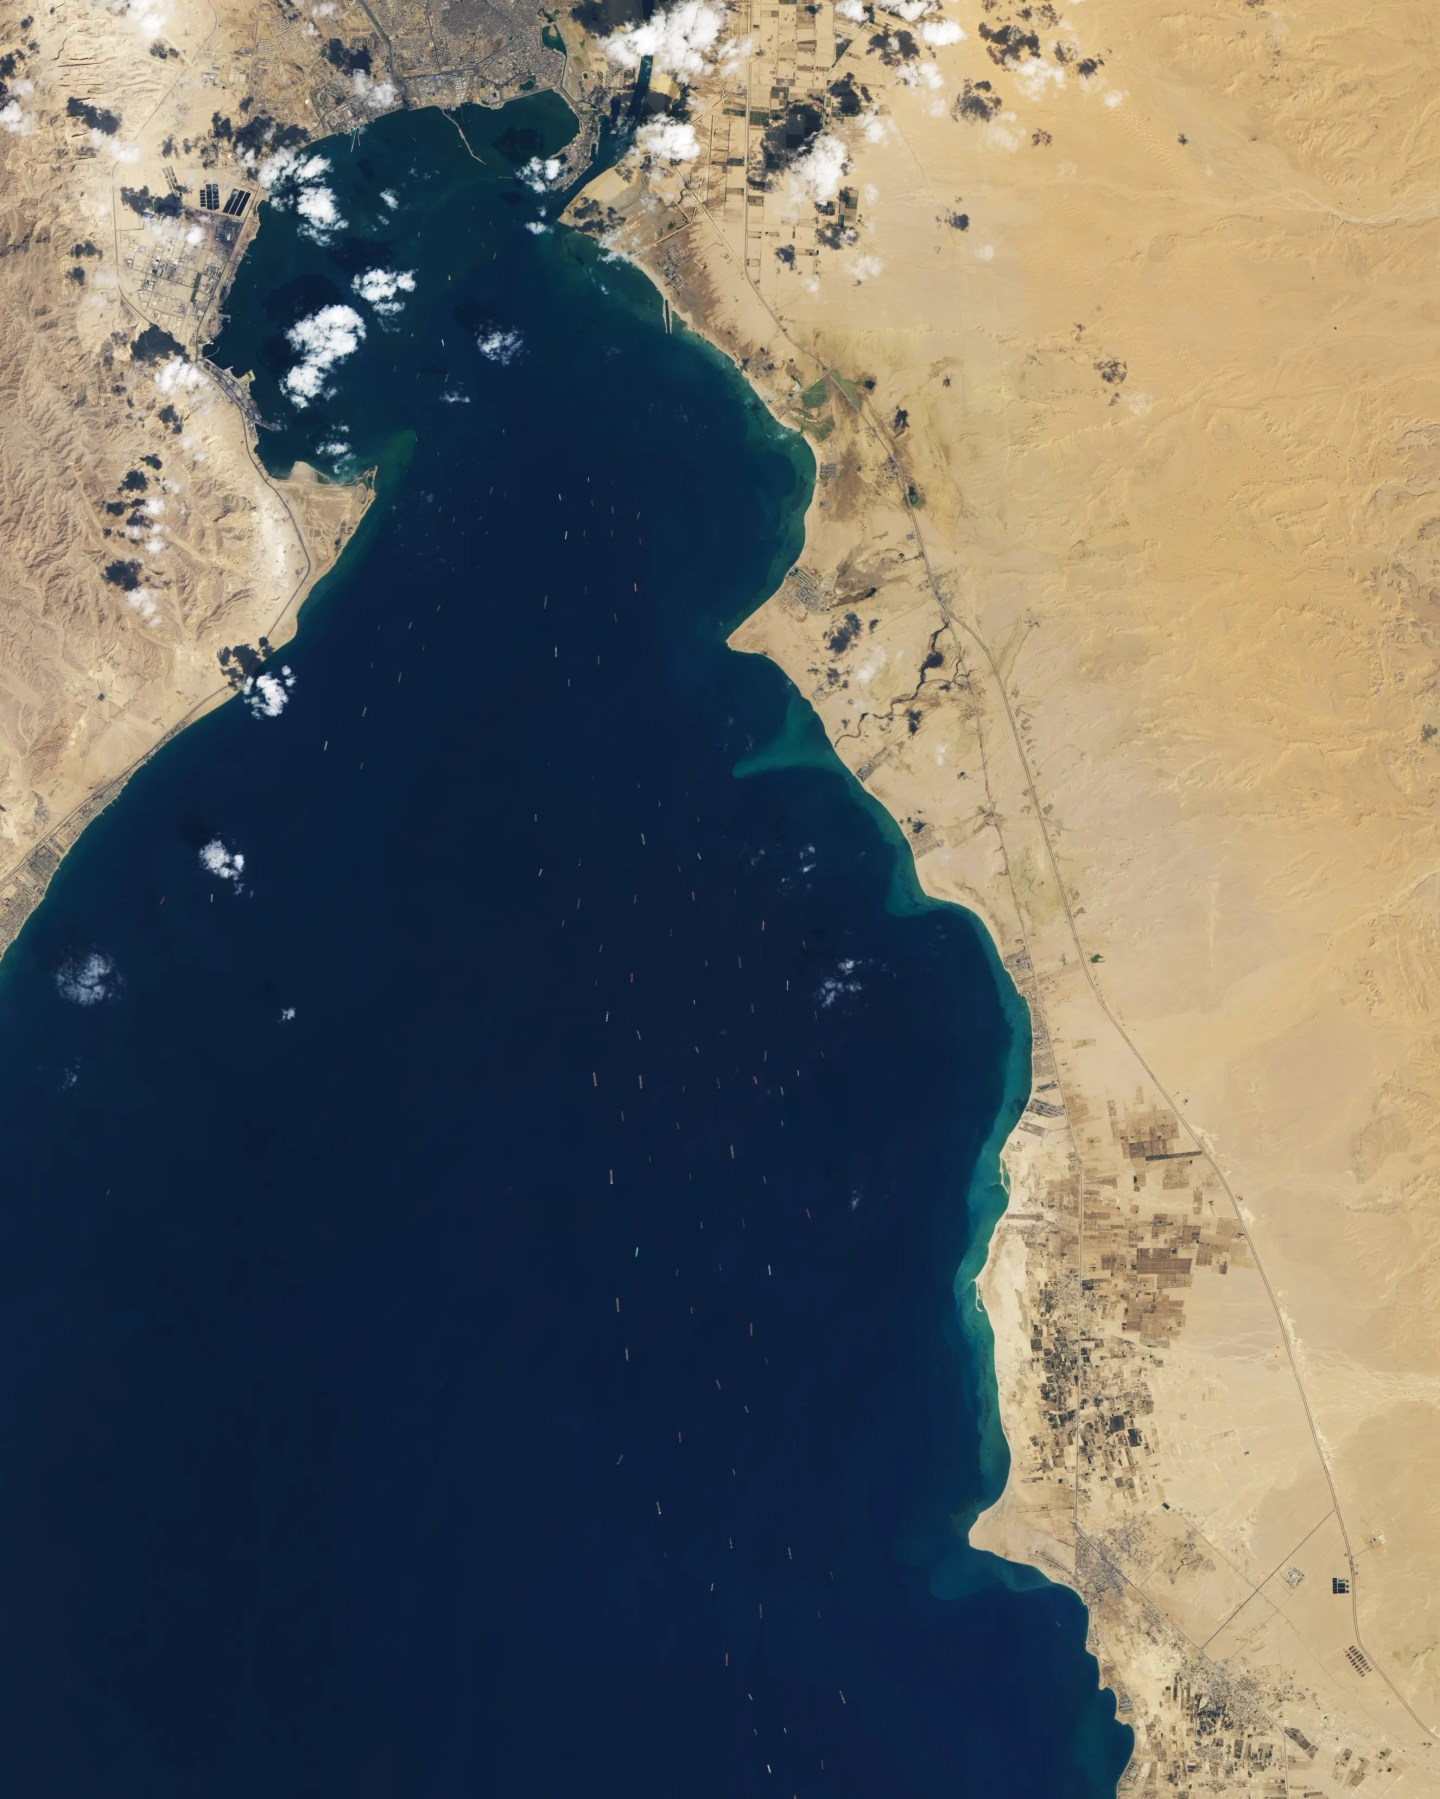 Satellite imagery shows ships jammed up around the Suez Canal.